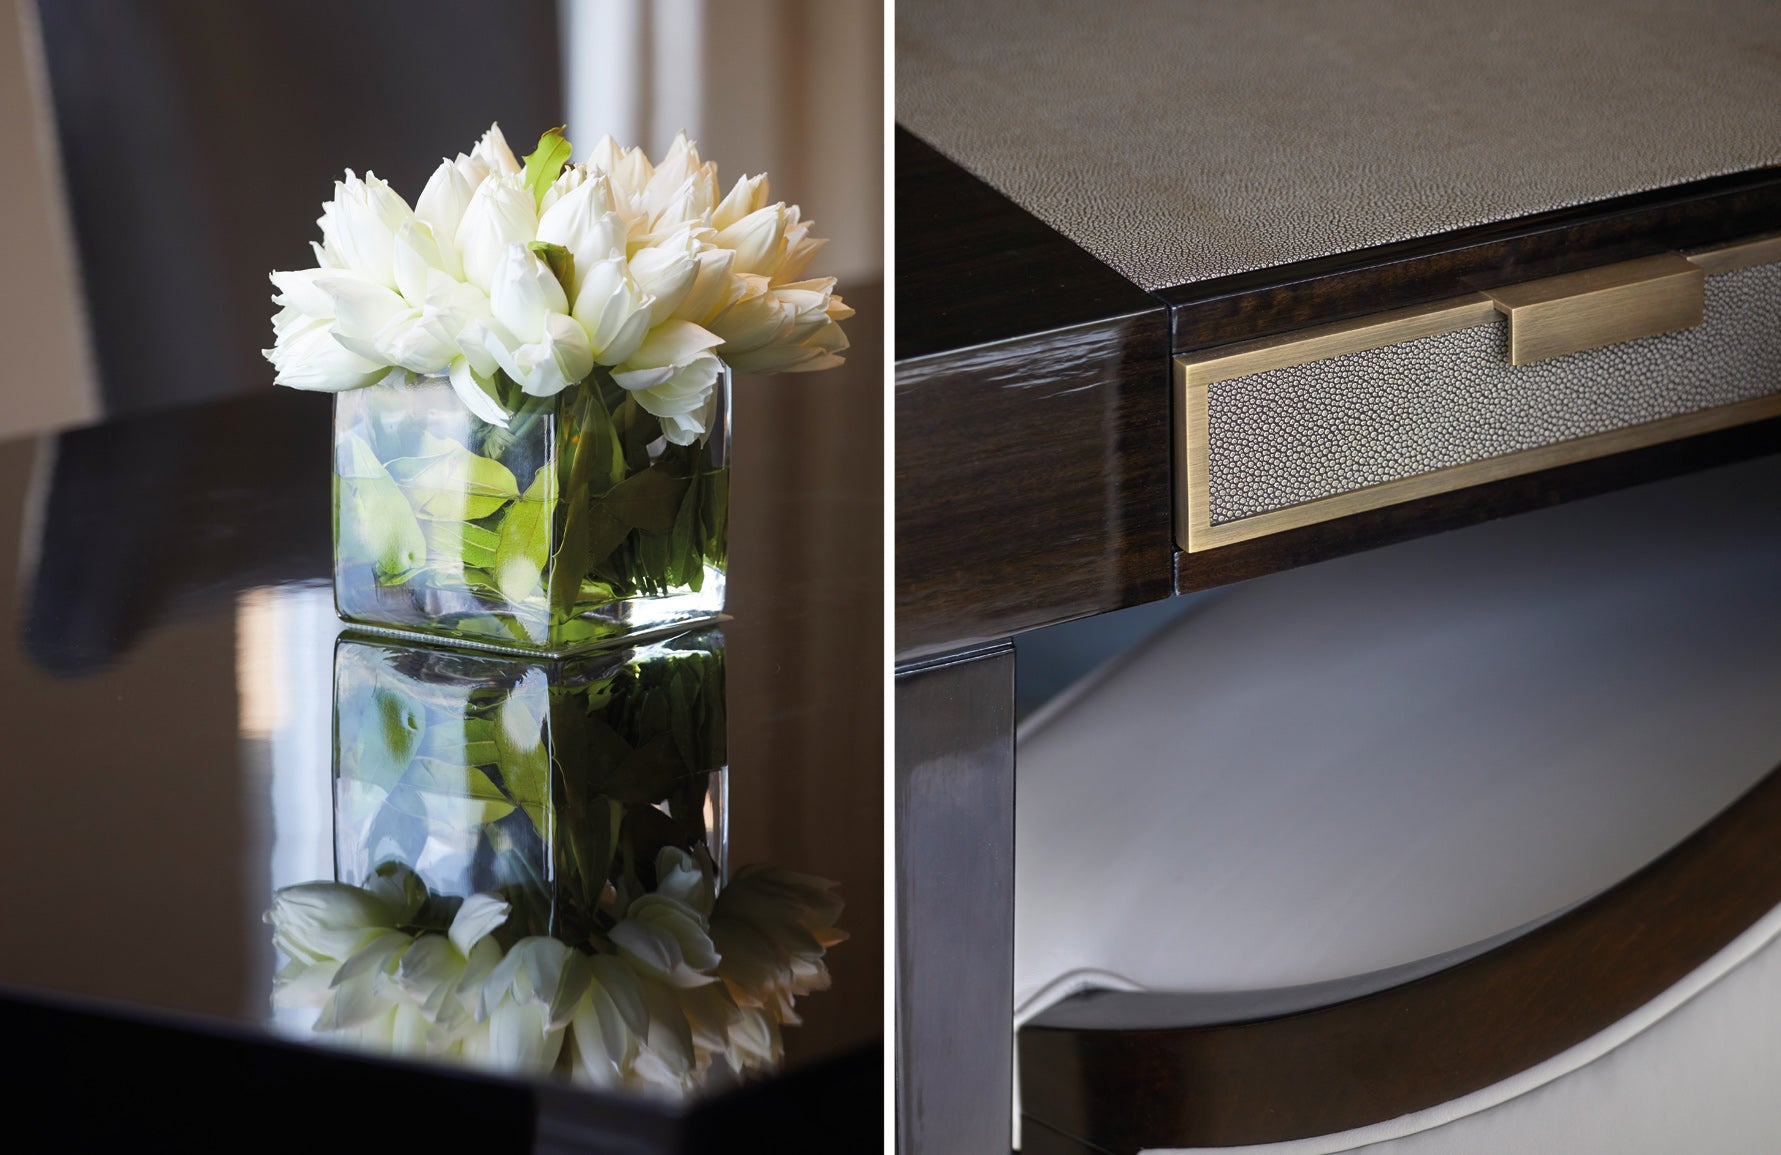 Luxury Furniture Details | Artificial Flowers | Shagreen Desk Detail | Shop the look on LuxDeco.com